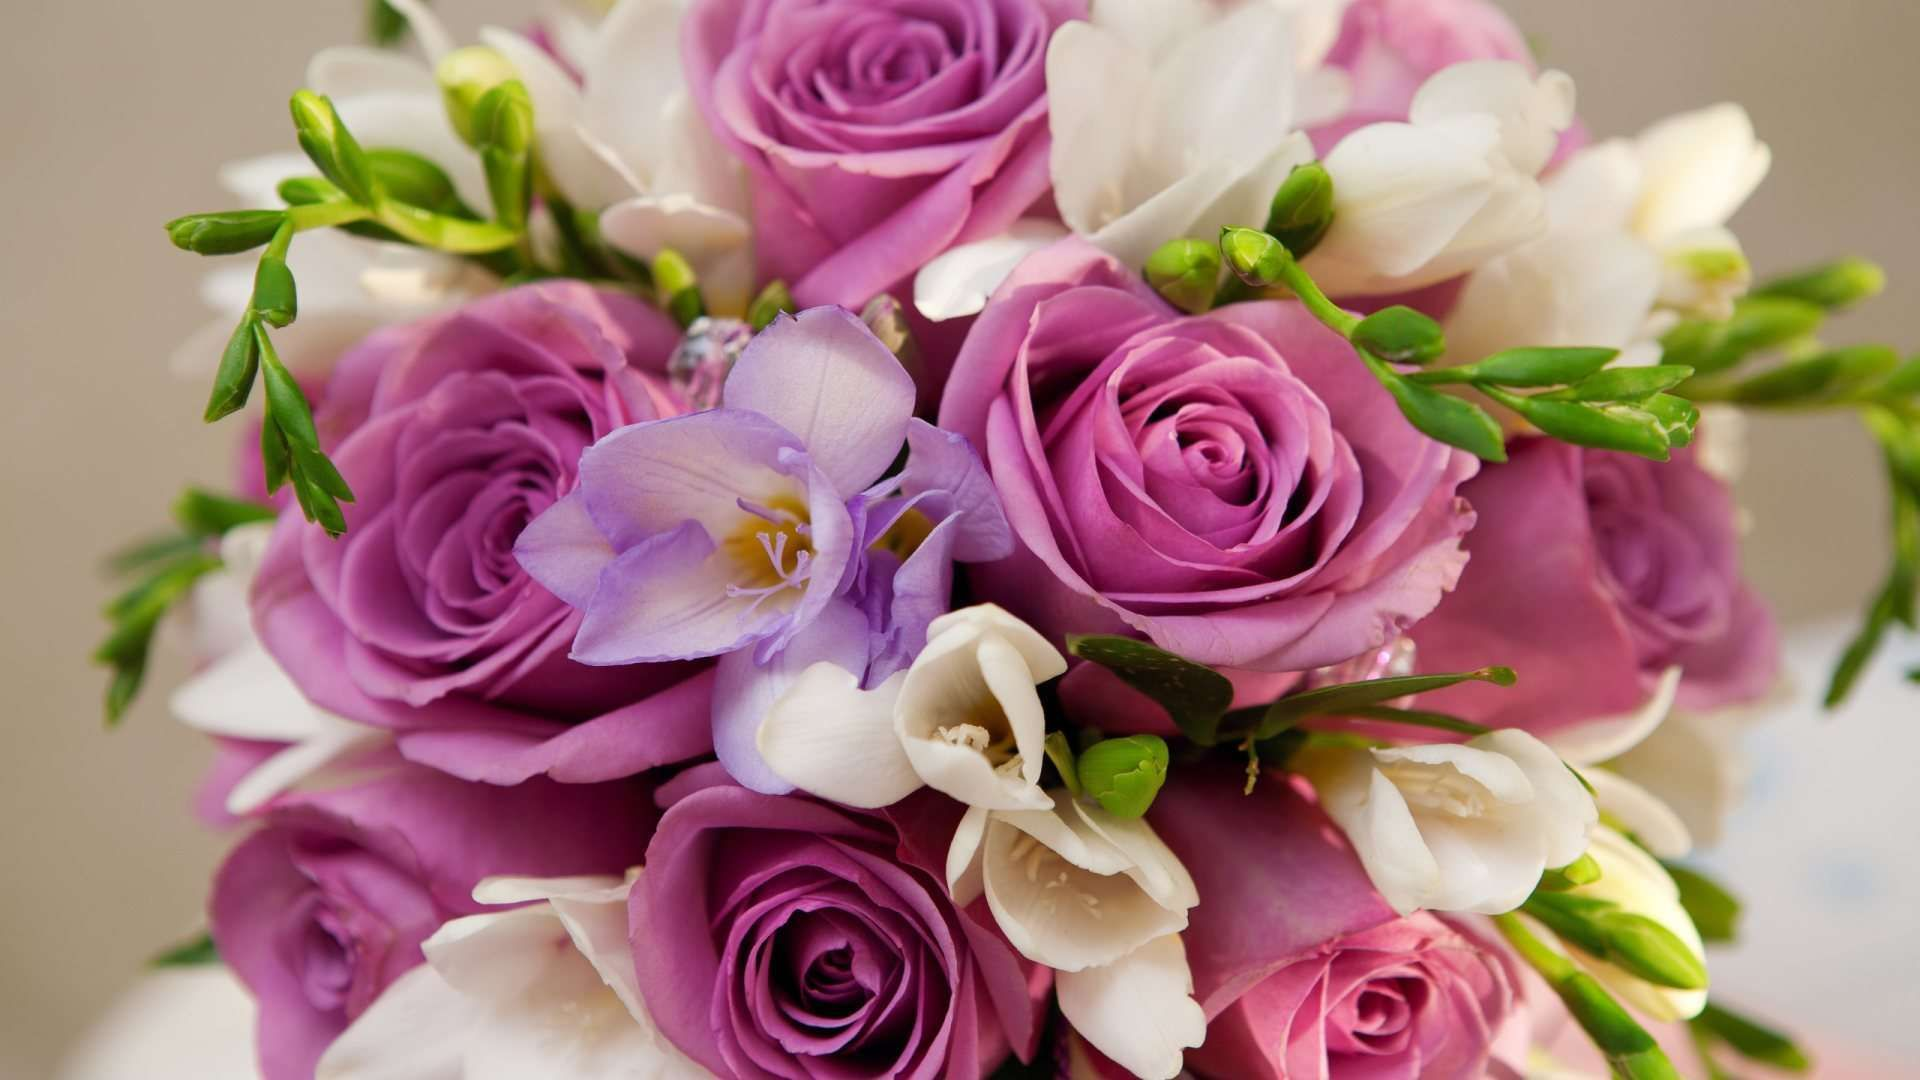 Beautiful Purple And White Flowers Bouquet 1080p Hd Wallpaper Beautiful Flowers White Flower Bouquet Beautiful Flowers Pictures